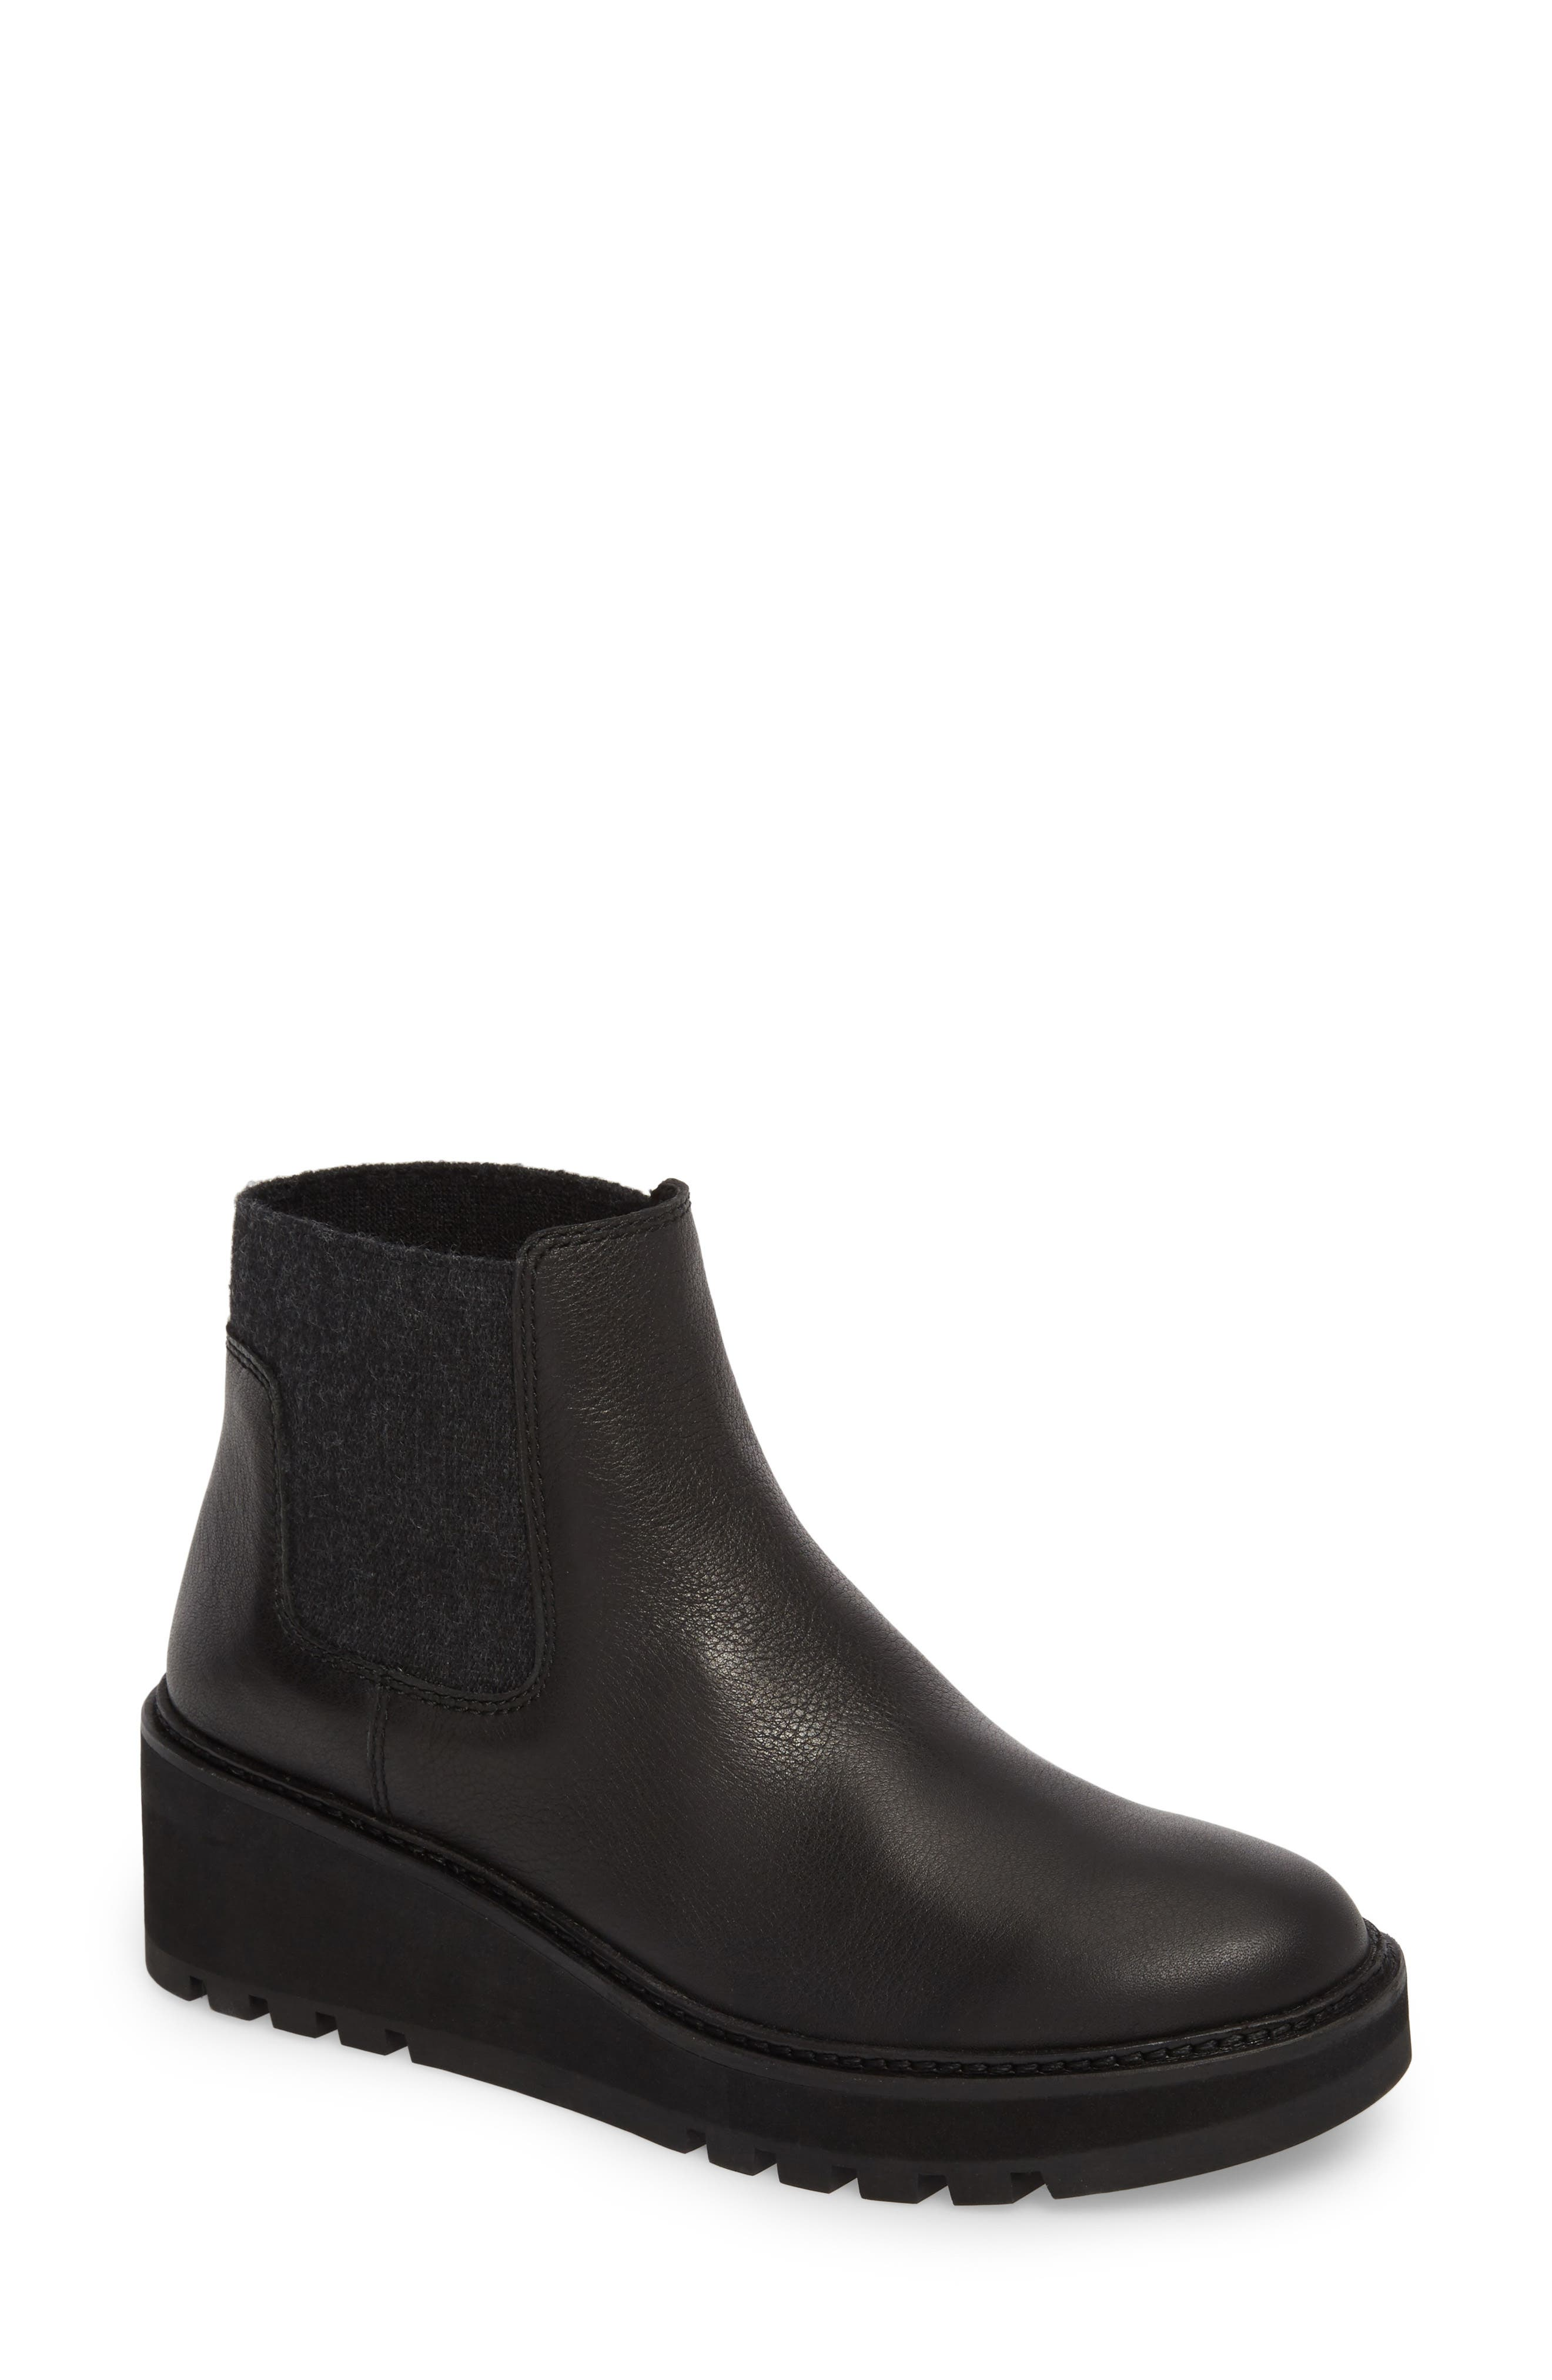 Wedge Chelsea Bootie,                             Main thumbnail 1, color,                             Black Washed Leather